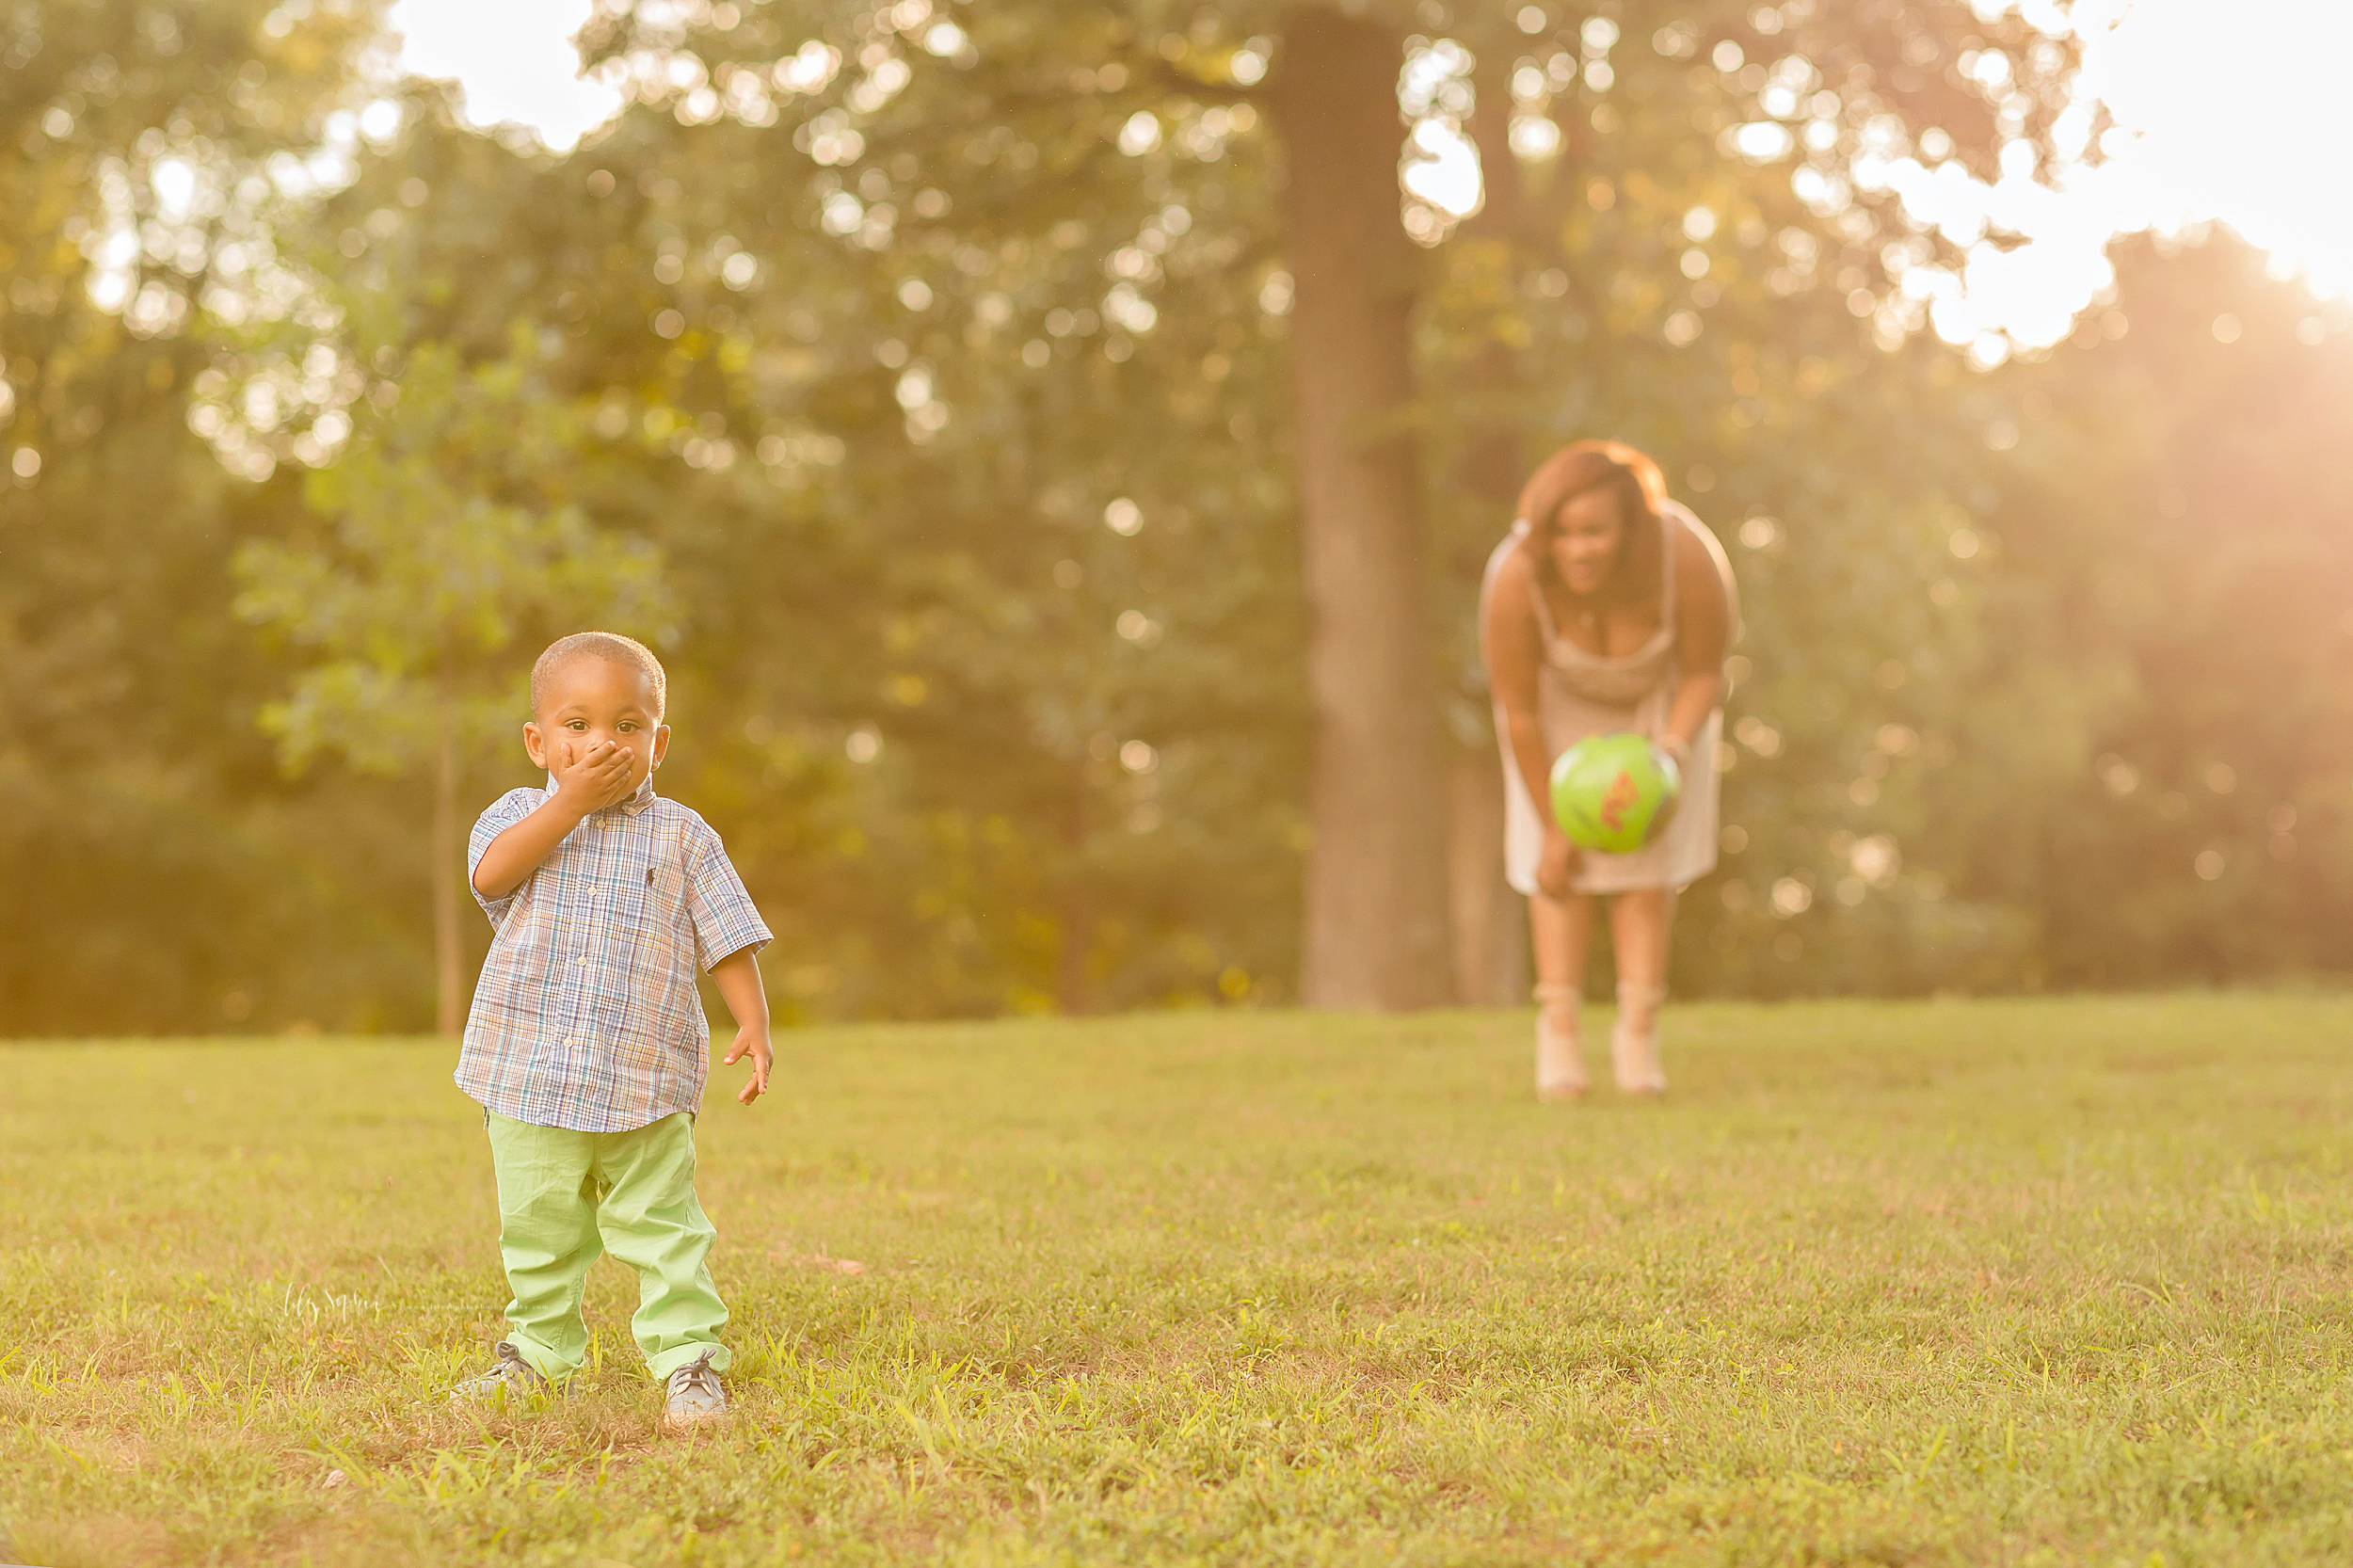 atlanta-hapeville-brookhaven-alpharetta-virginia-highlands-smyrna-decatur-lily-sophia-photography-outdoor-family-mother-toddler-son-second-birthday-park-sunset-pictures_0700.jpg